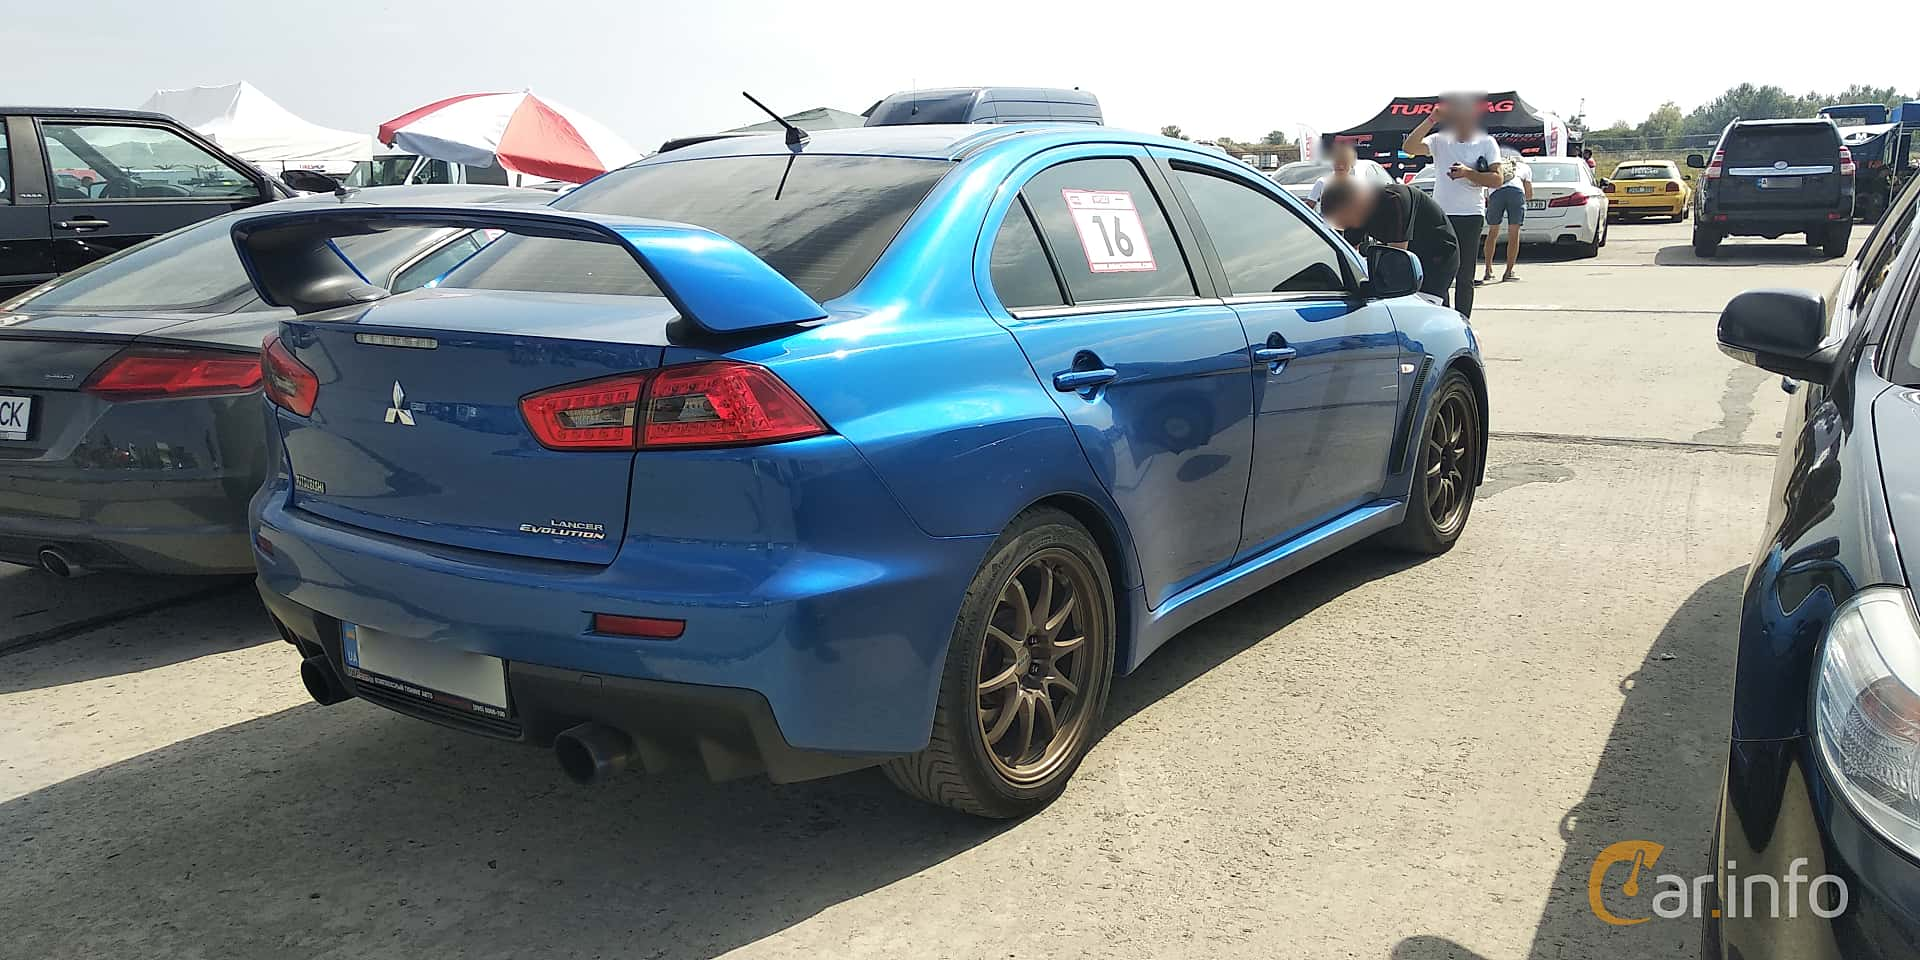 Mitsubishi Lancer Evolution 2.0 4WD DSG Sequential, 295hp, 2008 at Proudrs Drag racing Poltava 2019